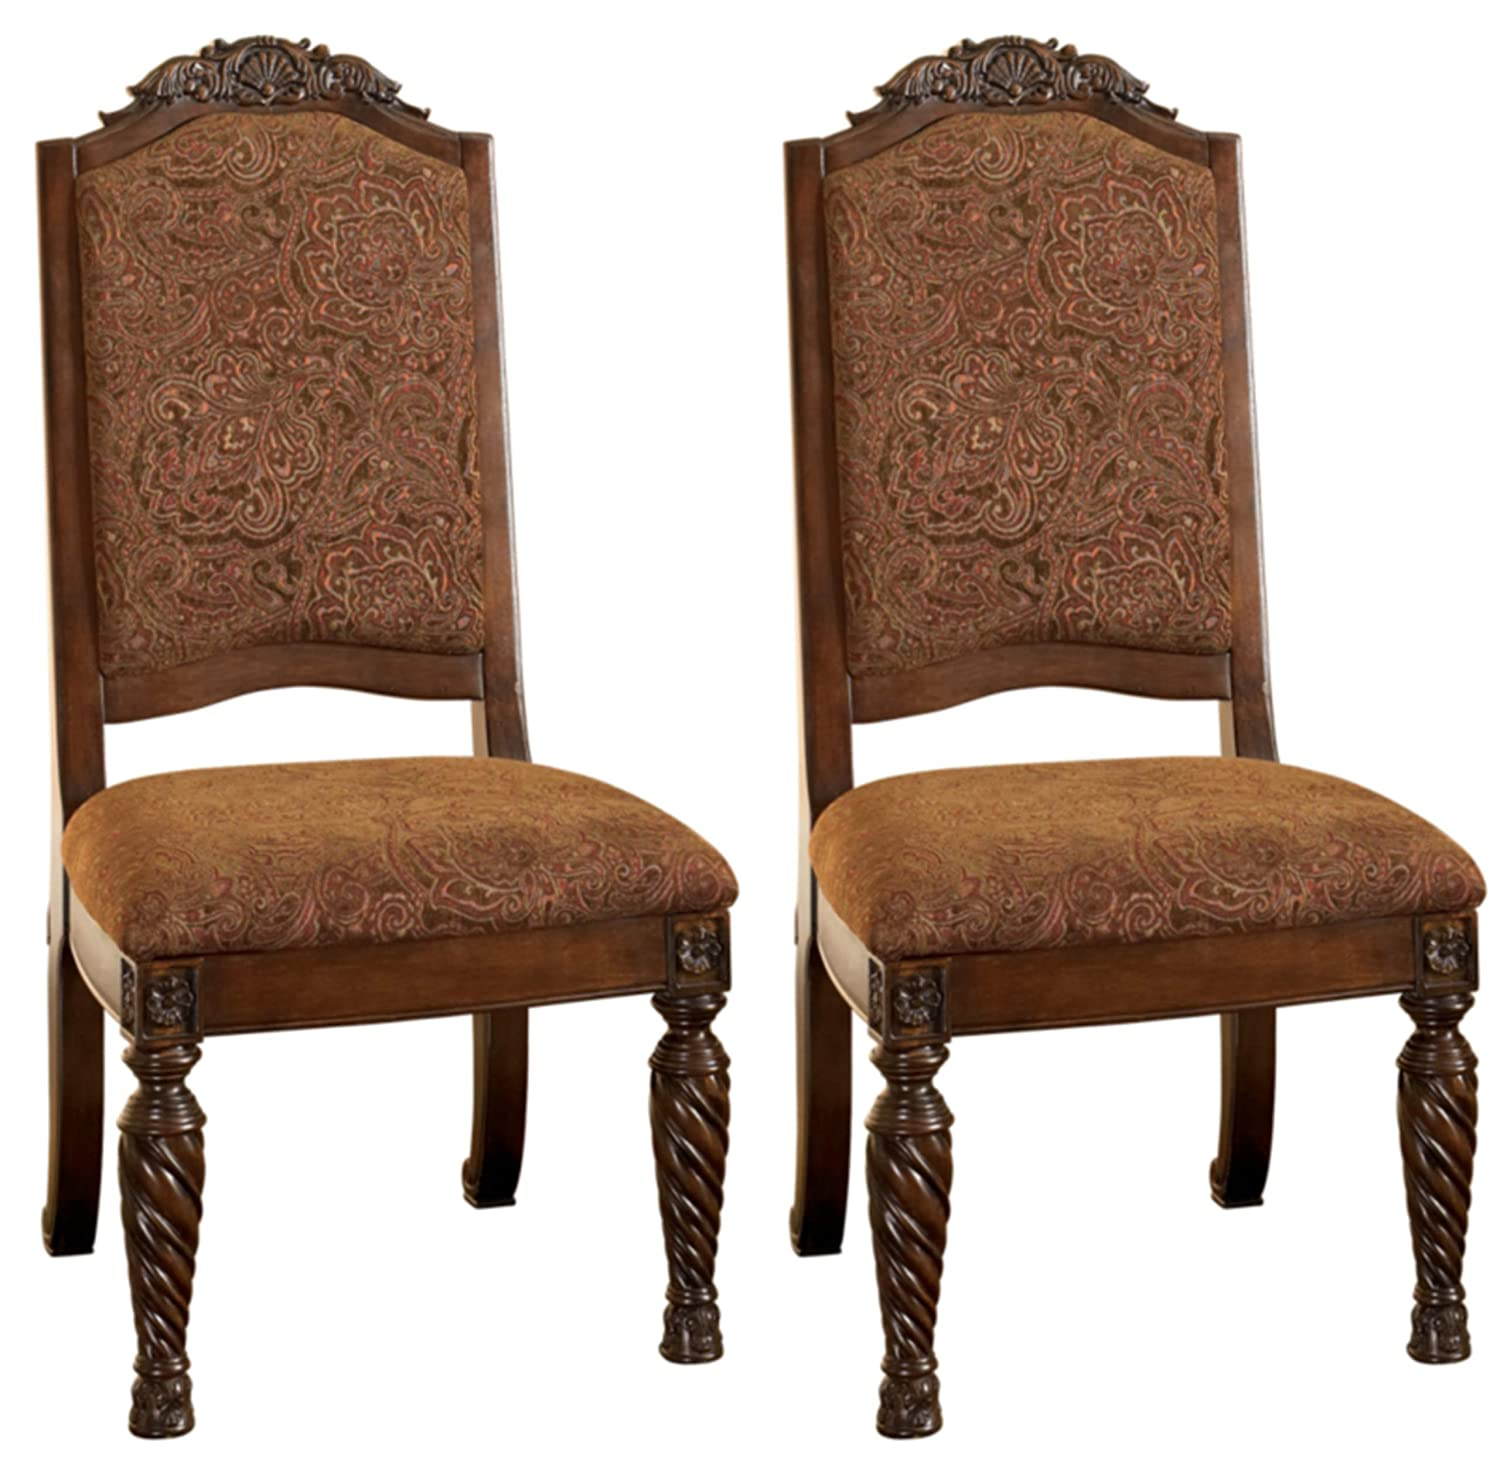 Signature Design By Ashley - North Shore Dining Upholstered Side Chair - Set of 2 - Traditional Style - Dark Brown